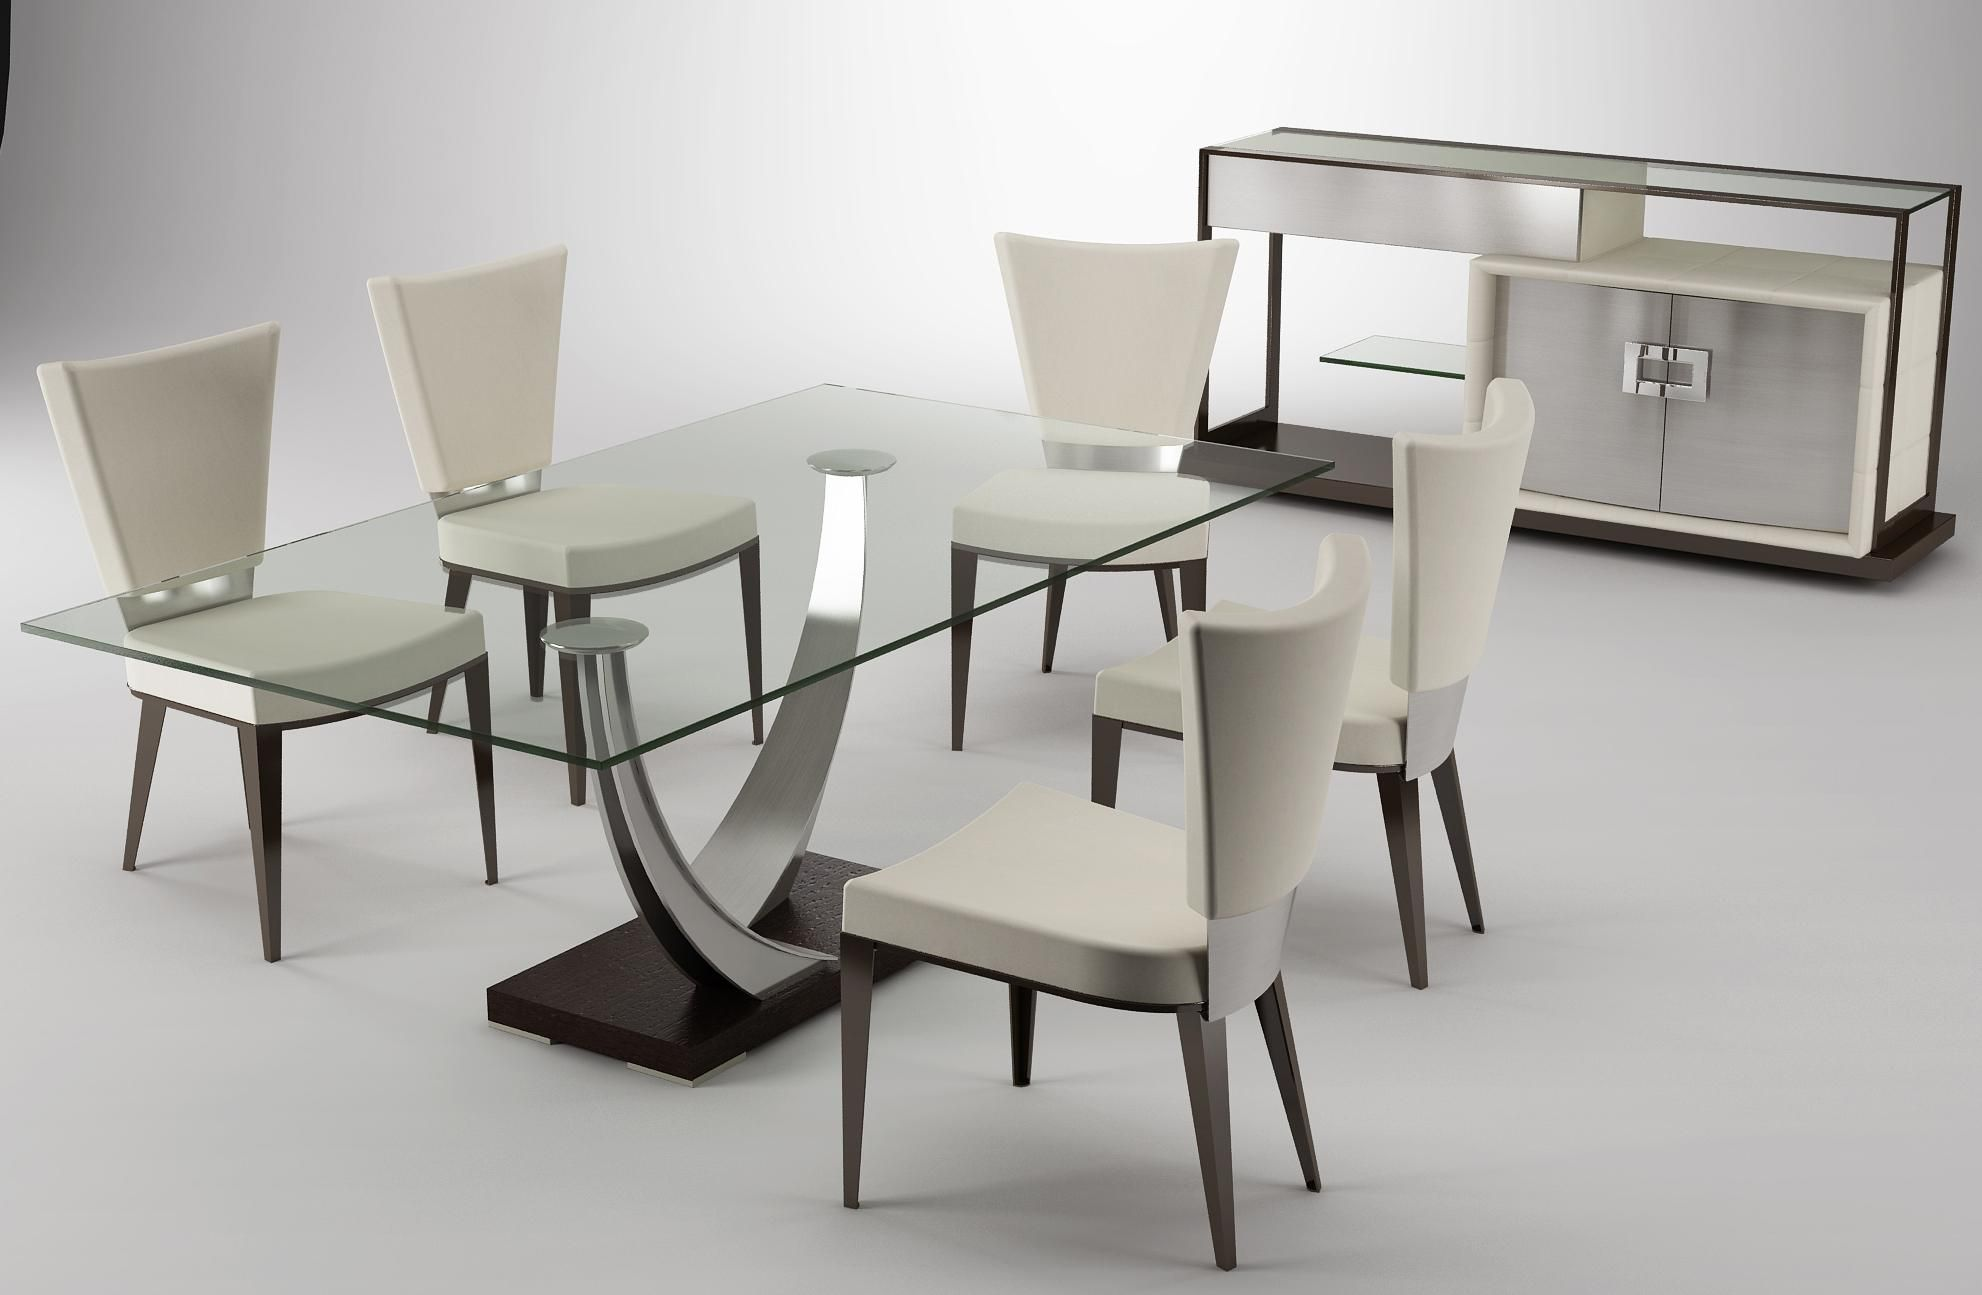 Amazing modern stylish dining room table set designs elite Images of modern dining rooms